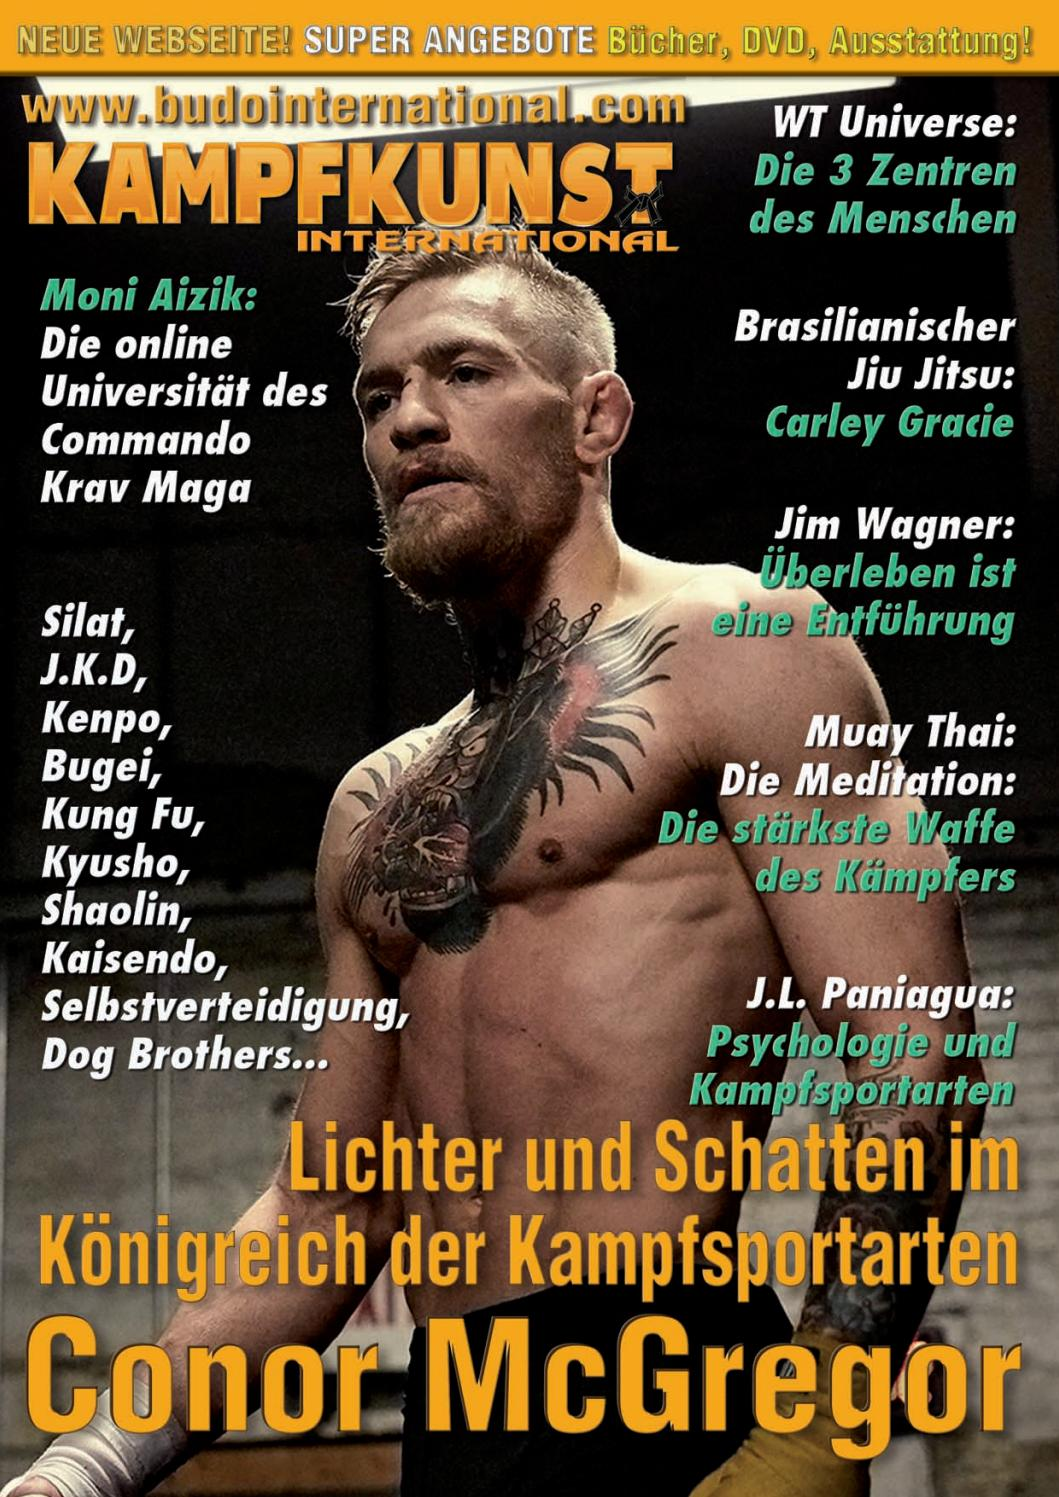 Kampfkunst Budo International 350 Januar Teil 1 2018 By